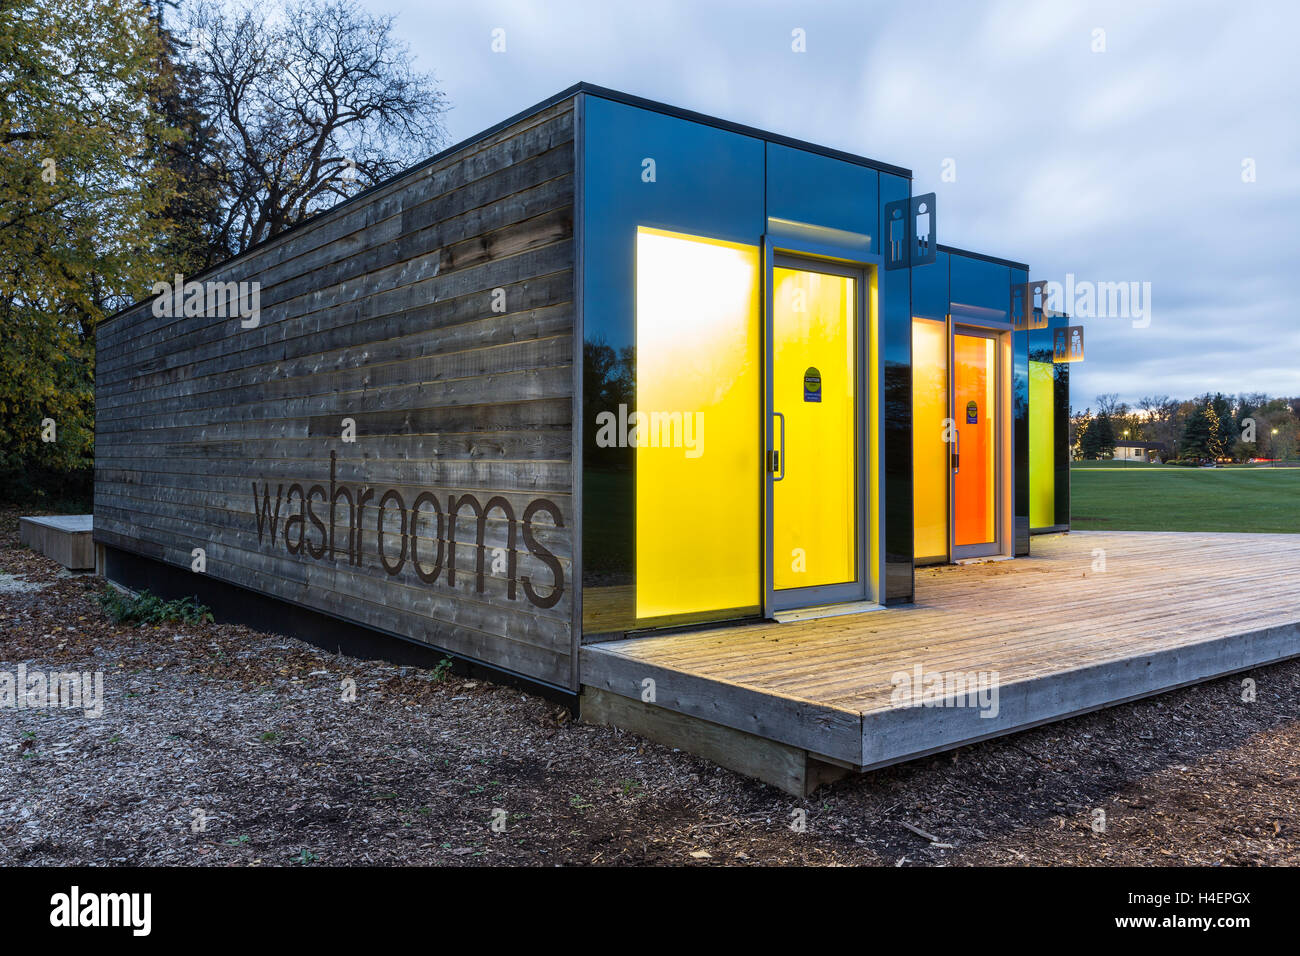 Shipping containers converted into washrooms, Assiniboine Park, Winnipeg, Manitoba, Canada. - Stock Image